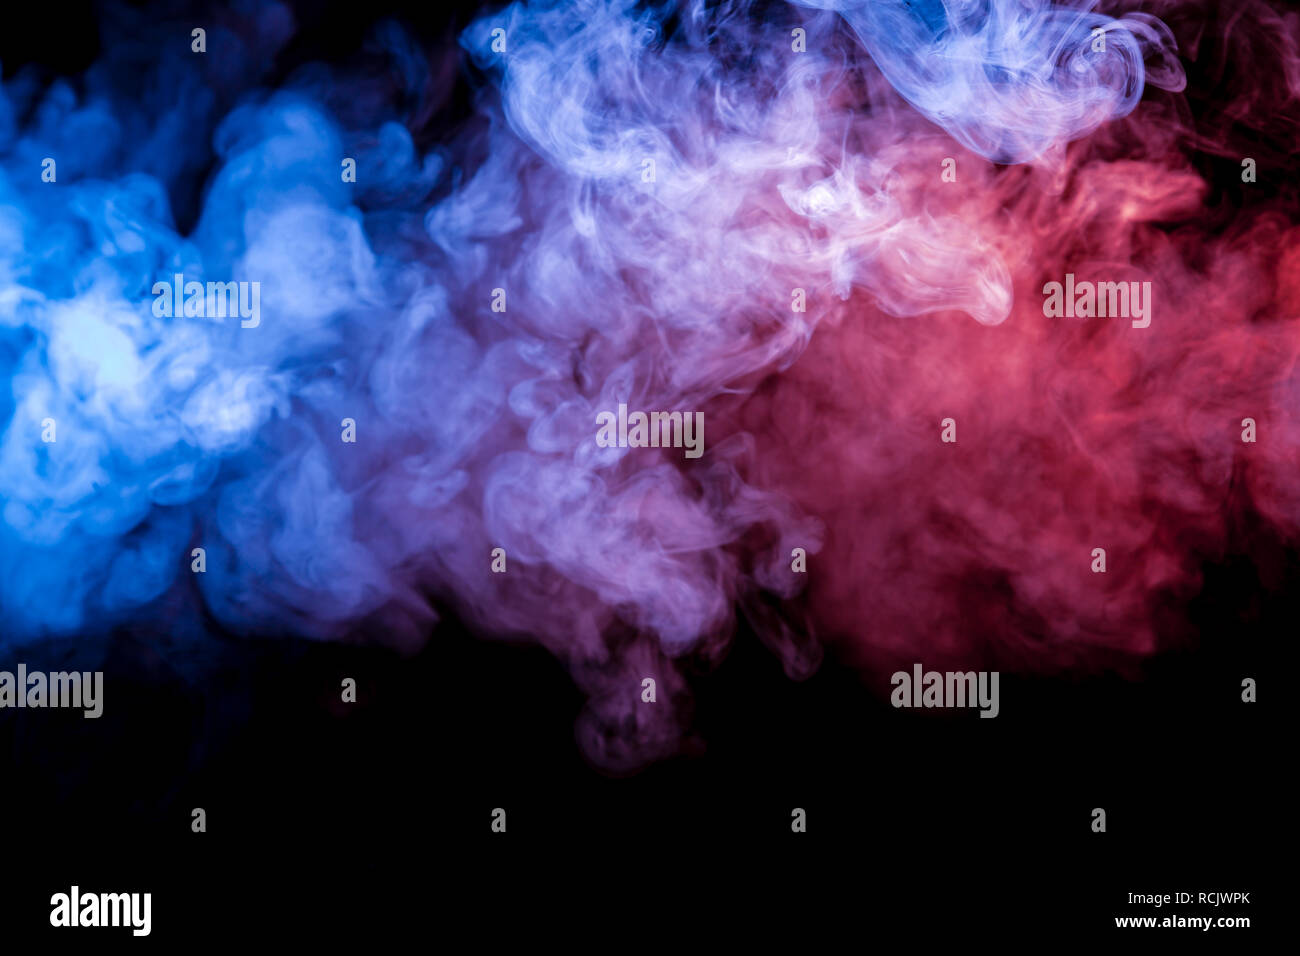 Multicolored Heavy Smoke From A Vape Of Blue And Purple Color Of The Exhaled By Scattered By Clubs On A Black Isolated Background Bright Clouds In Th Stock Photo Alamy